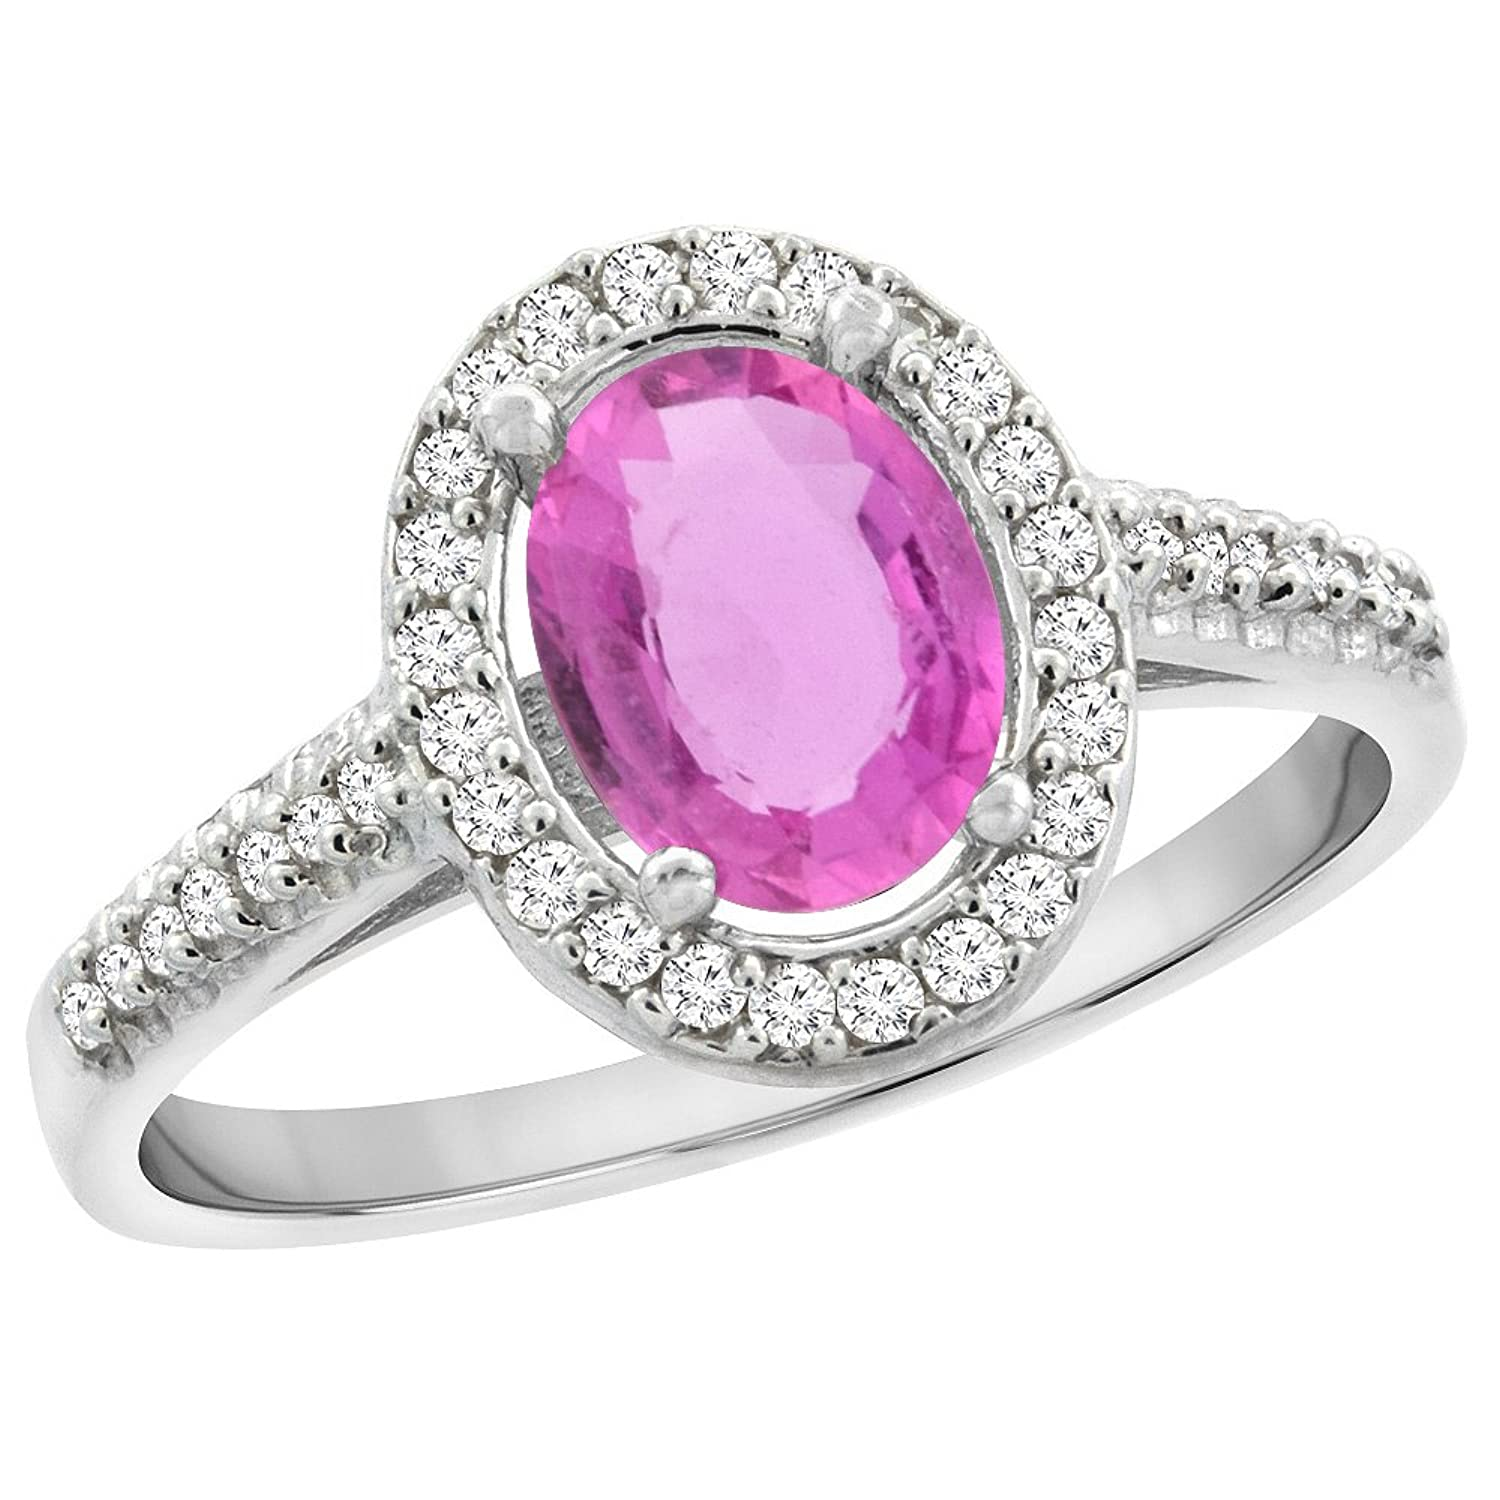 10K White Gold Natural Pink Sapphire Engagement Ring Oval 7x5 mm ...